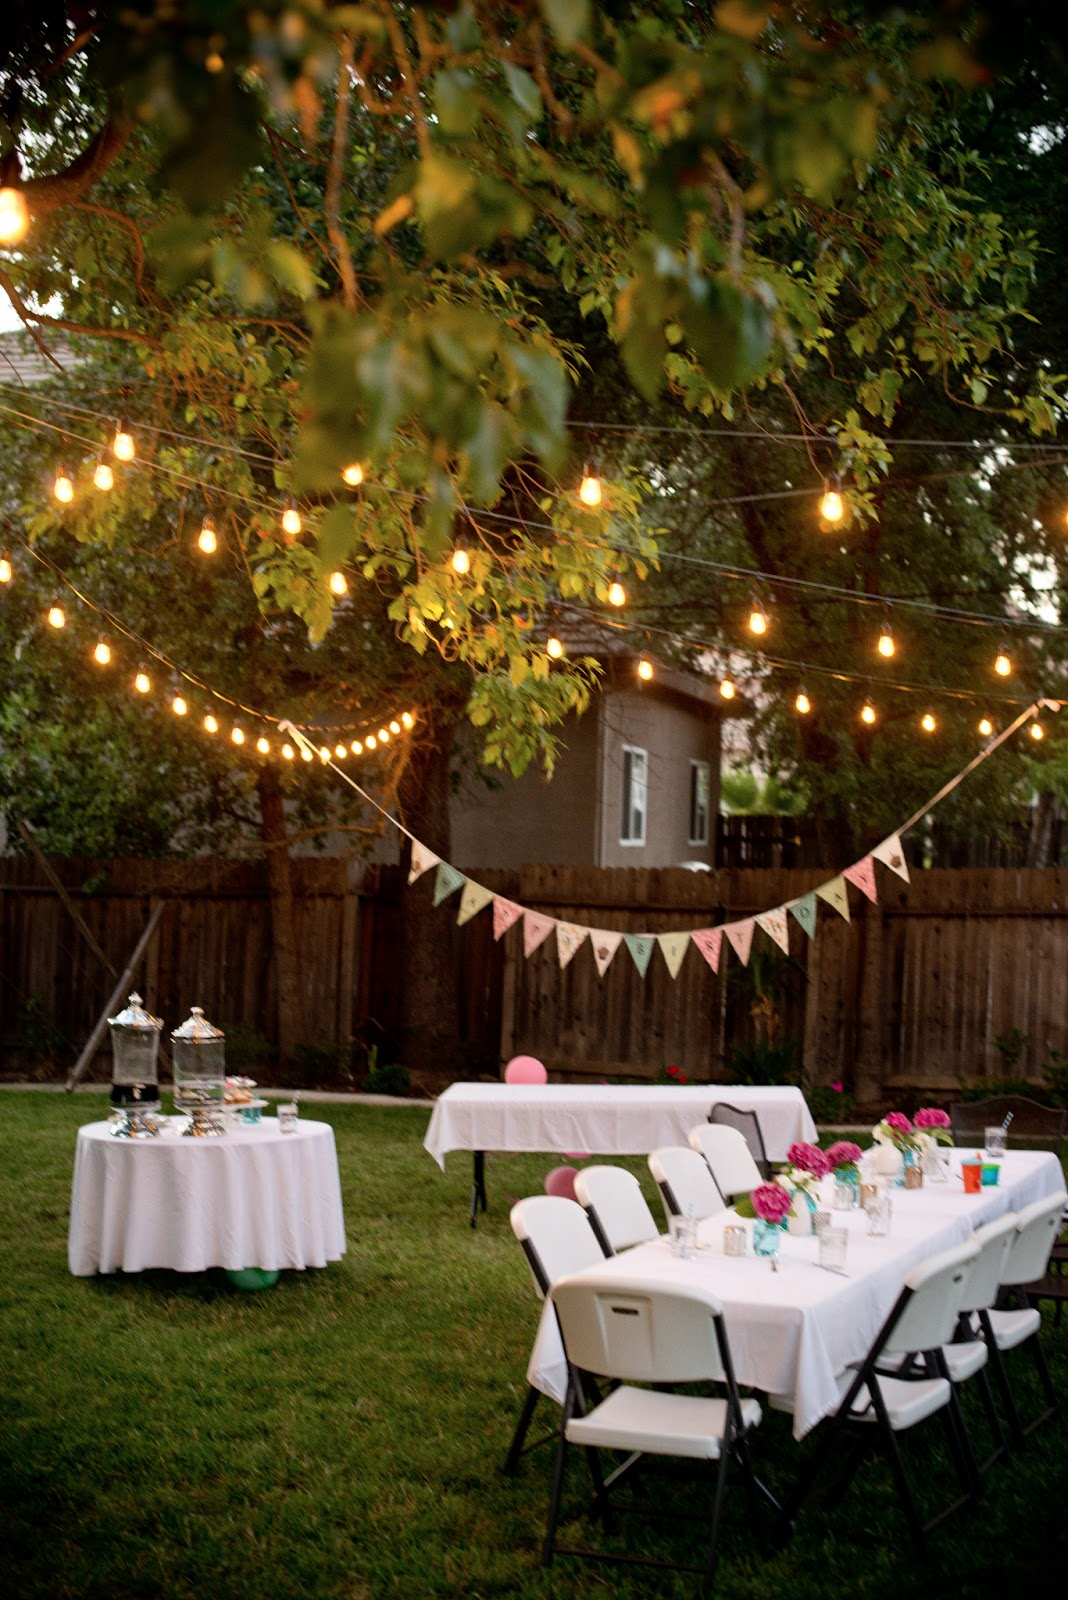 Domestic Fashionista: Backyard Birthday FunPink Hydrangeas + Polka Dot Napkins